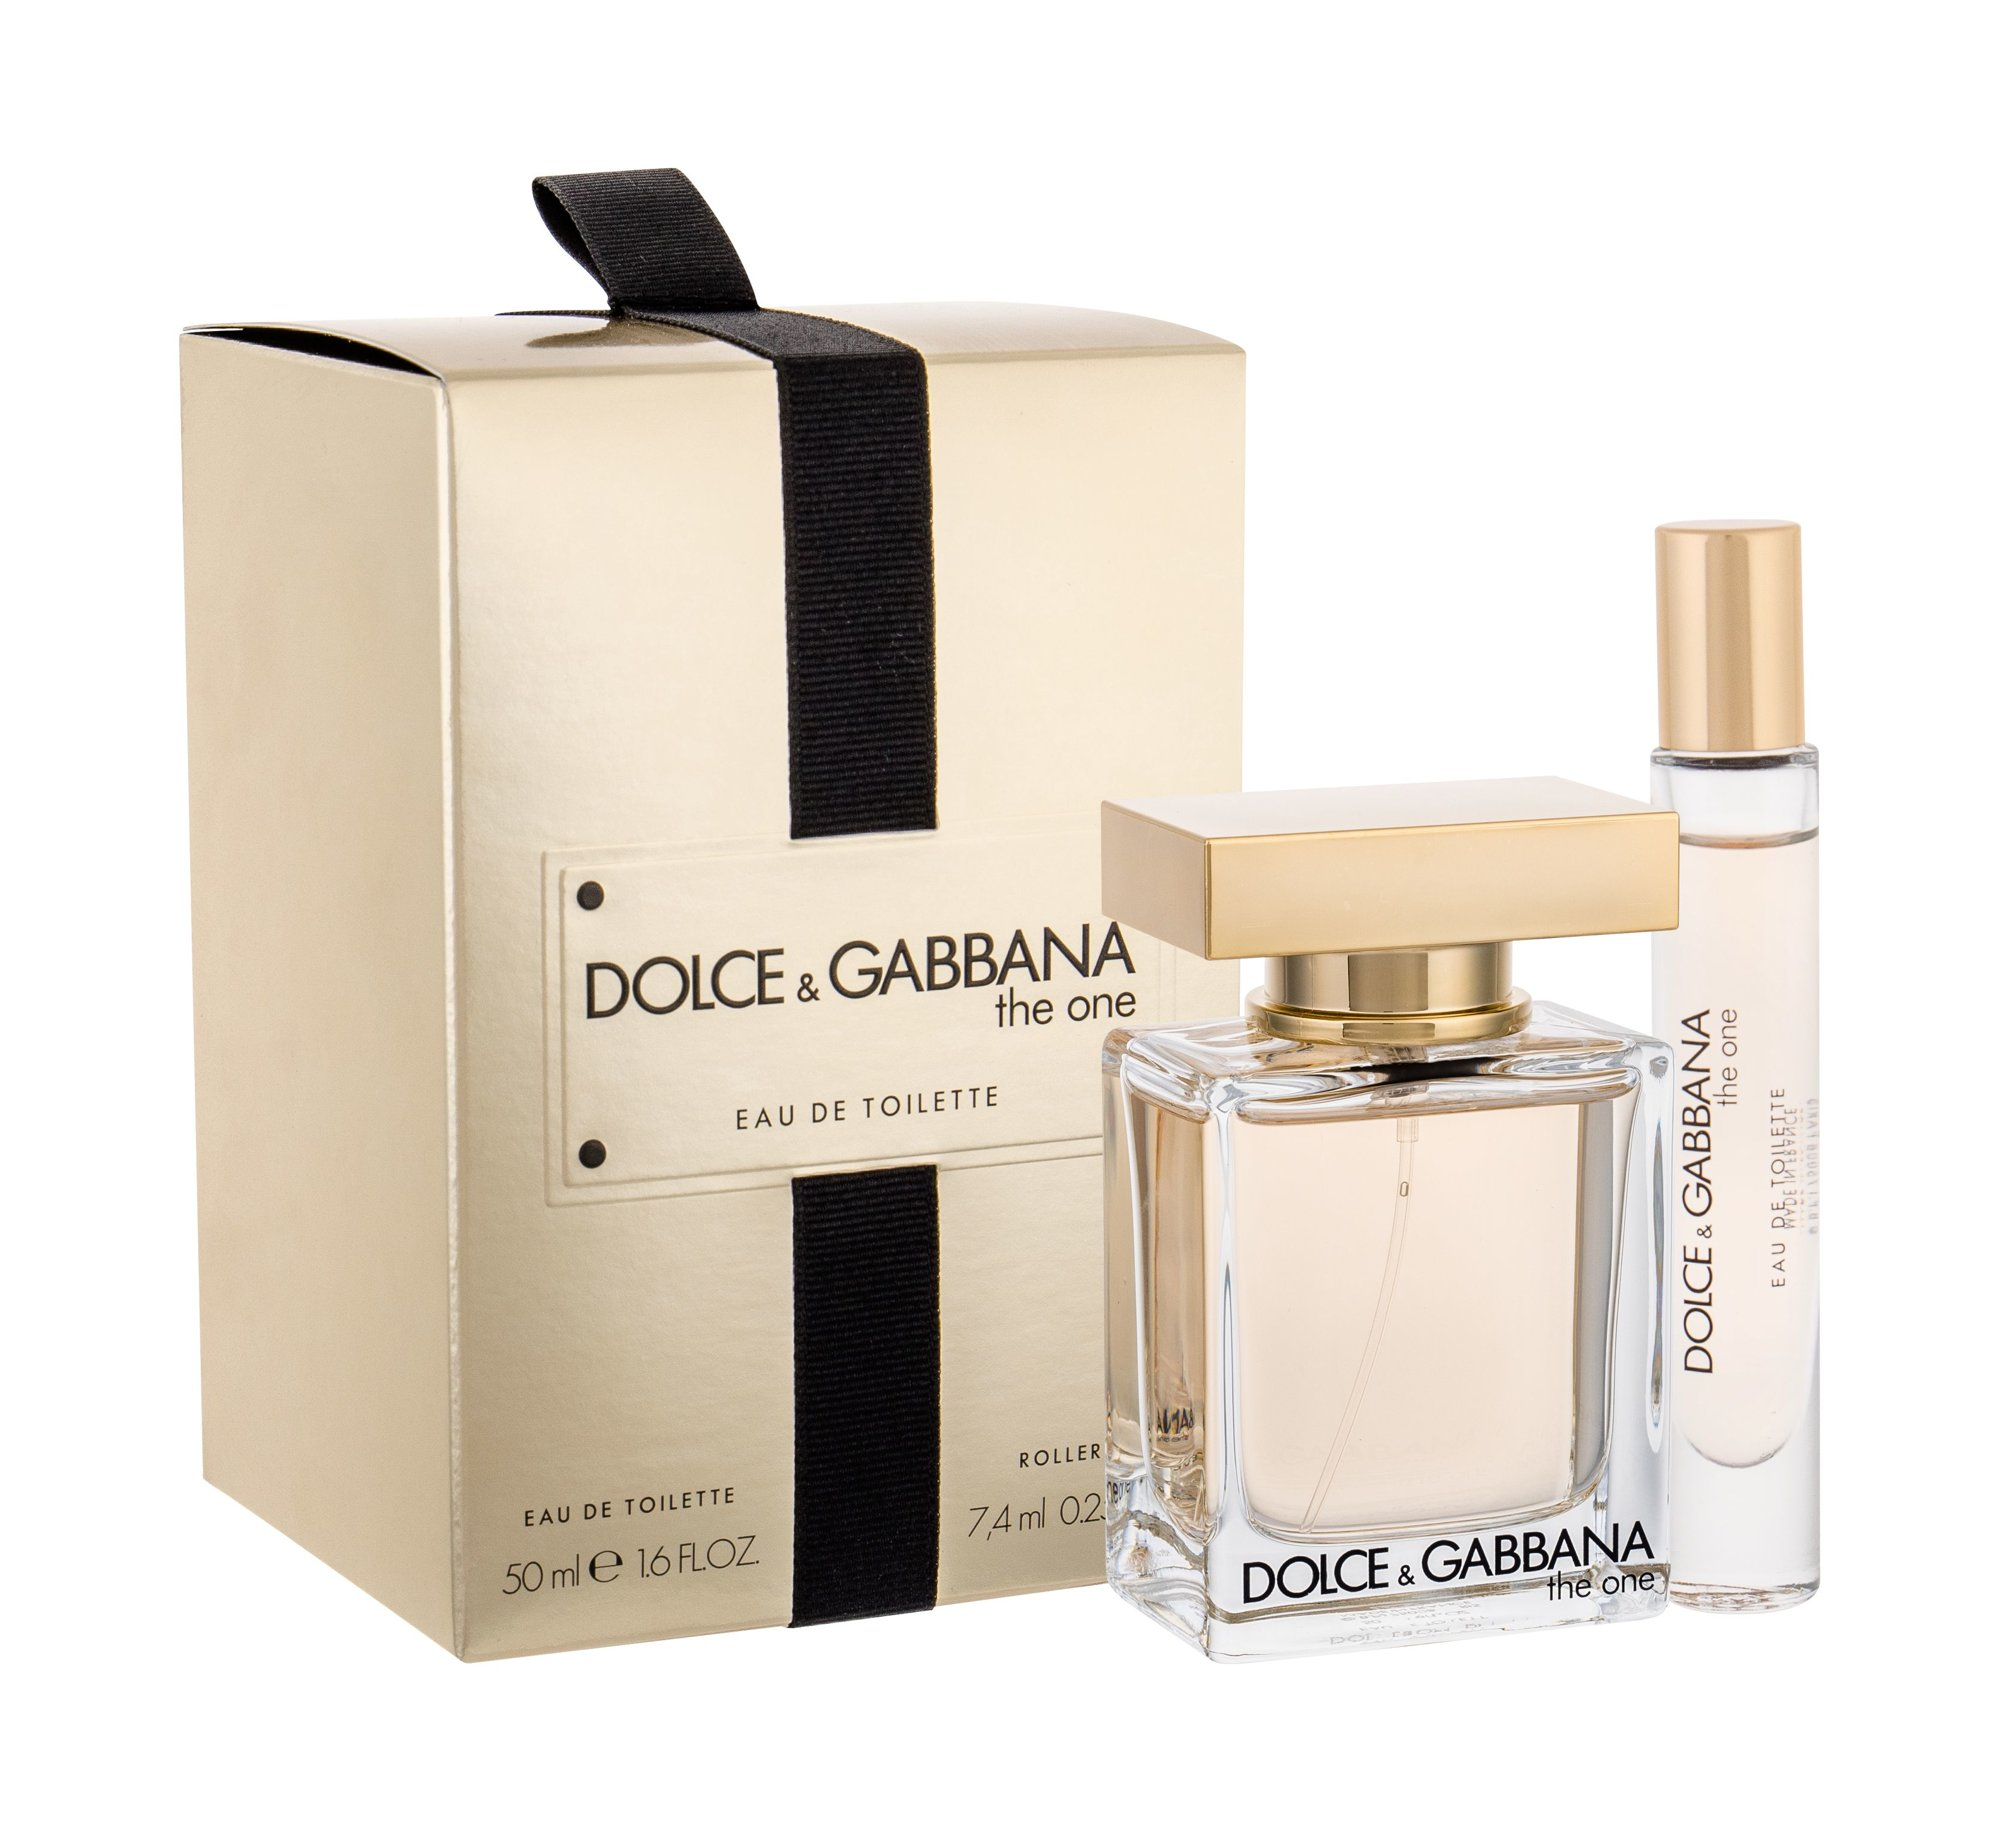 Dolce&Gabbana The One Eau de Toilette 50ml